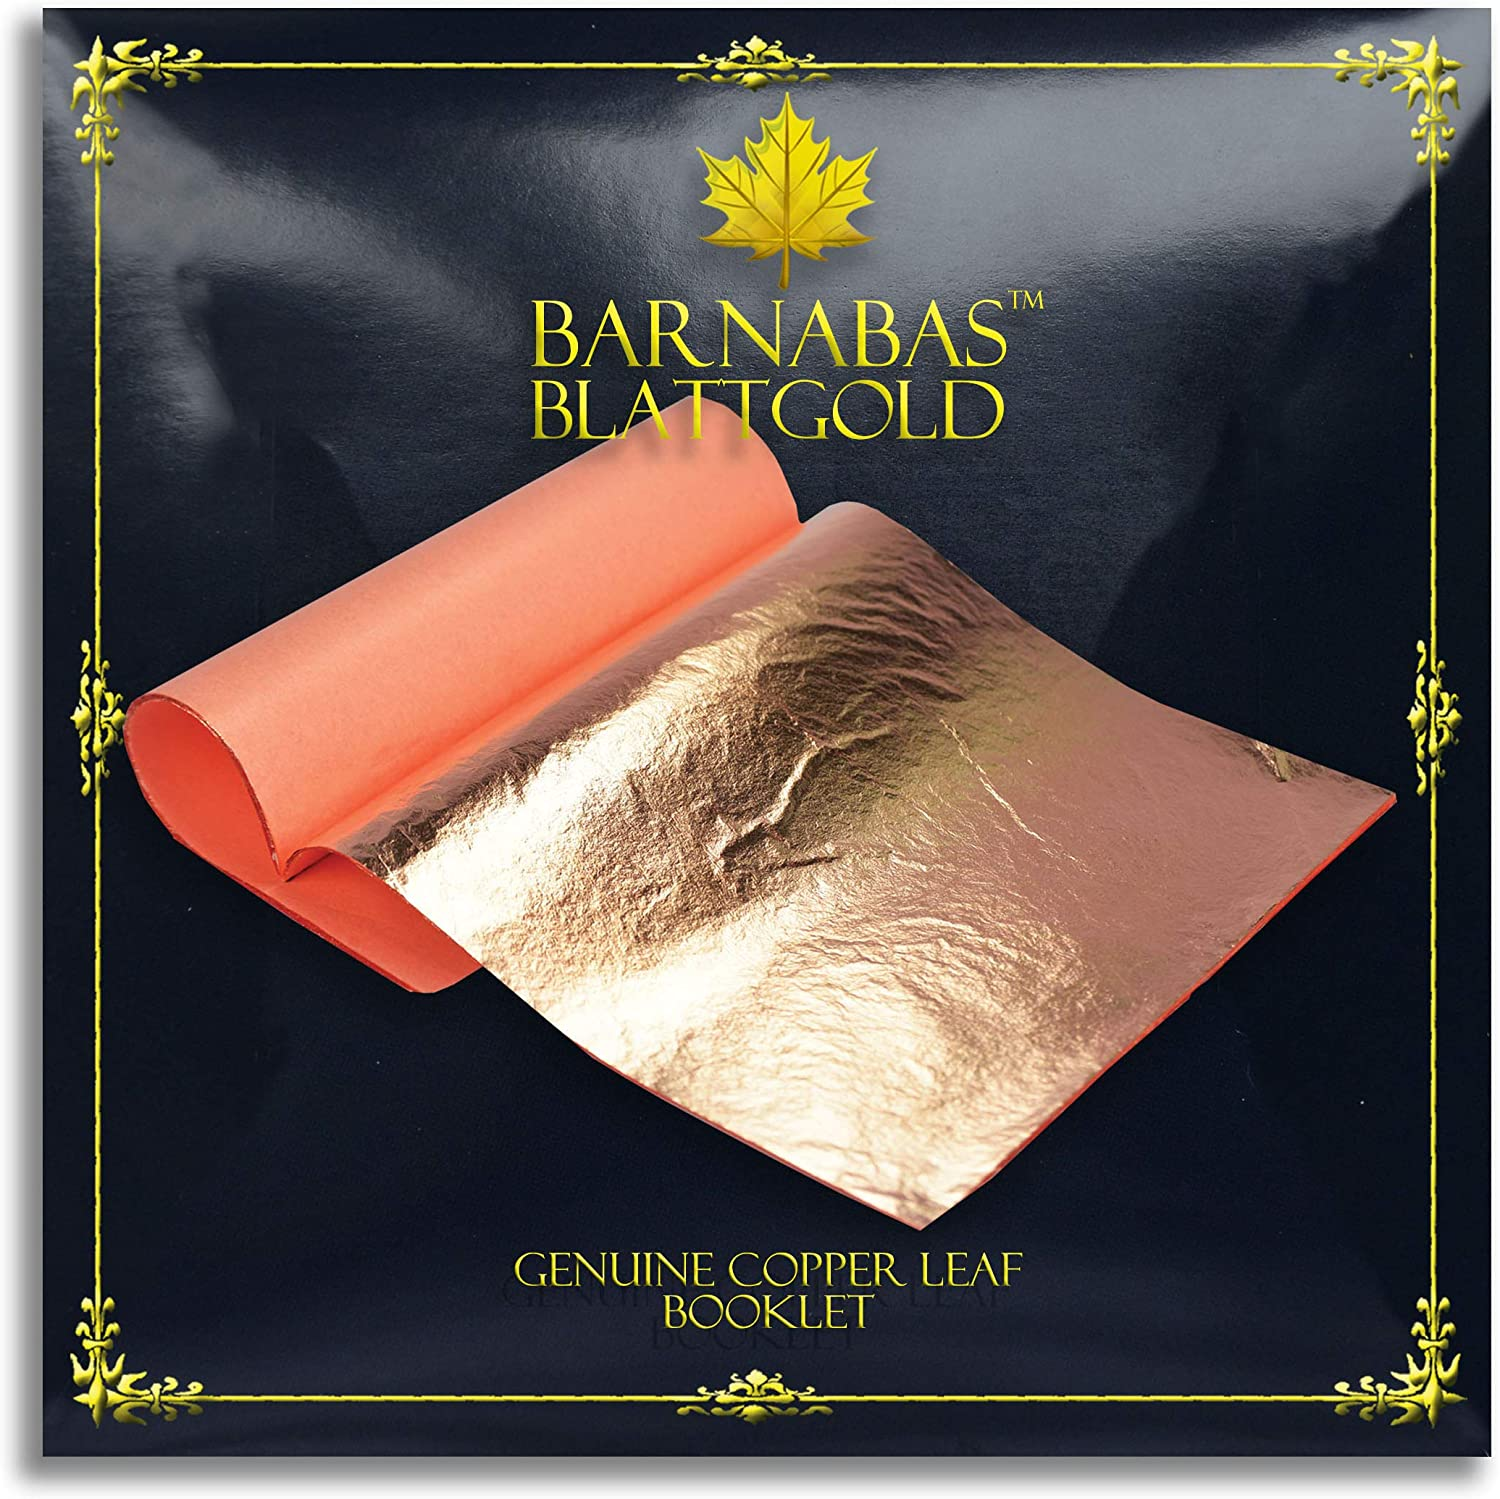 Transfer Patent Leaf by Barnabas Blattgold 5.5 inches Booklet 25 Sheets Genuine Copper Leaf Sheets